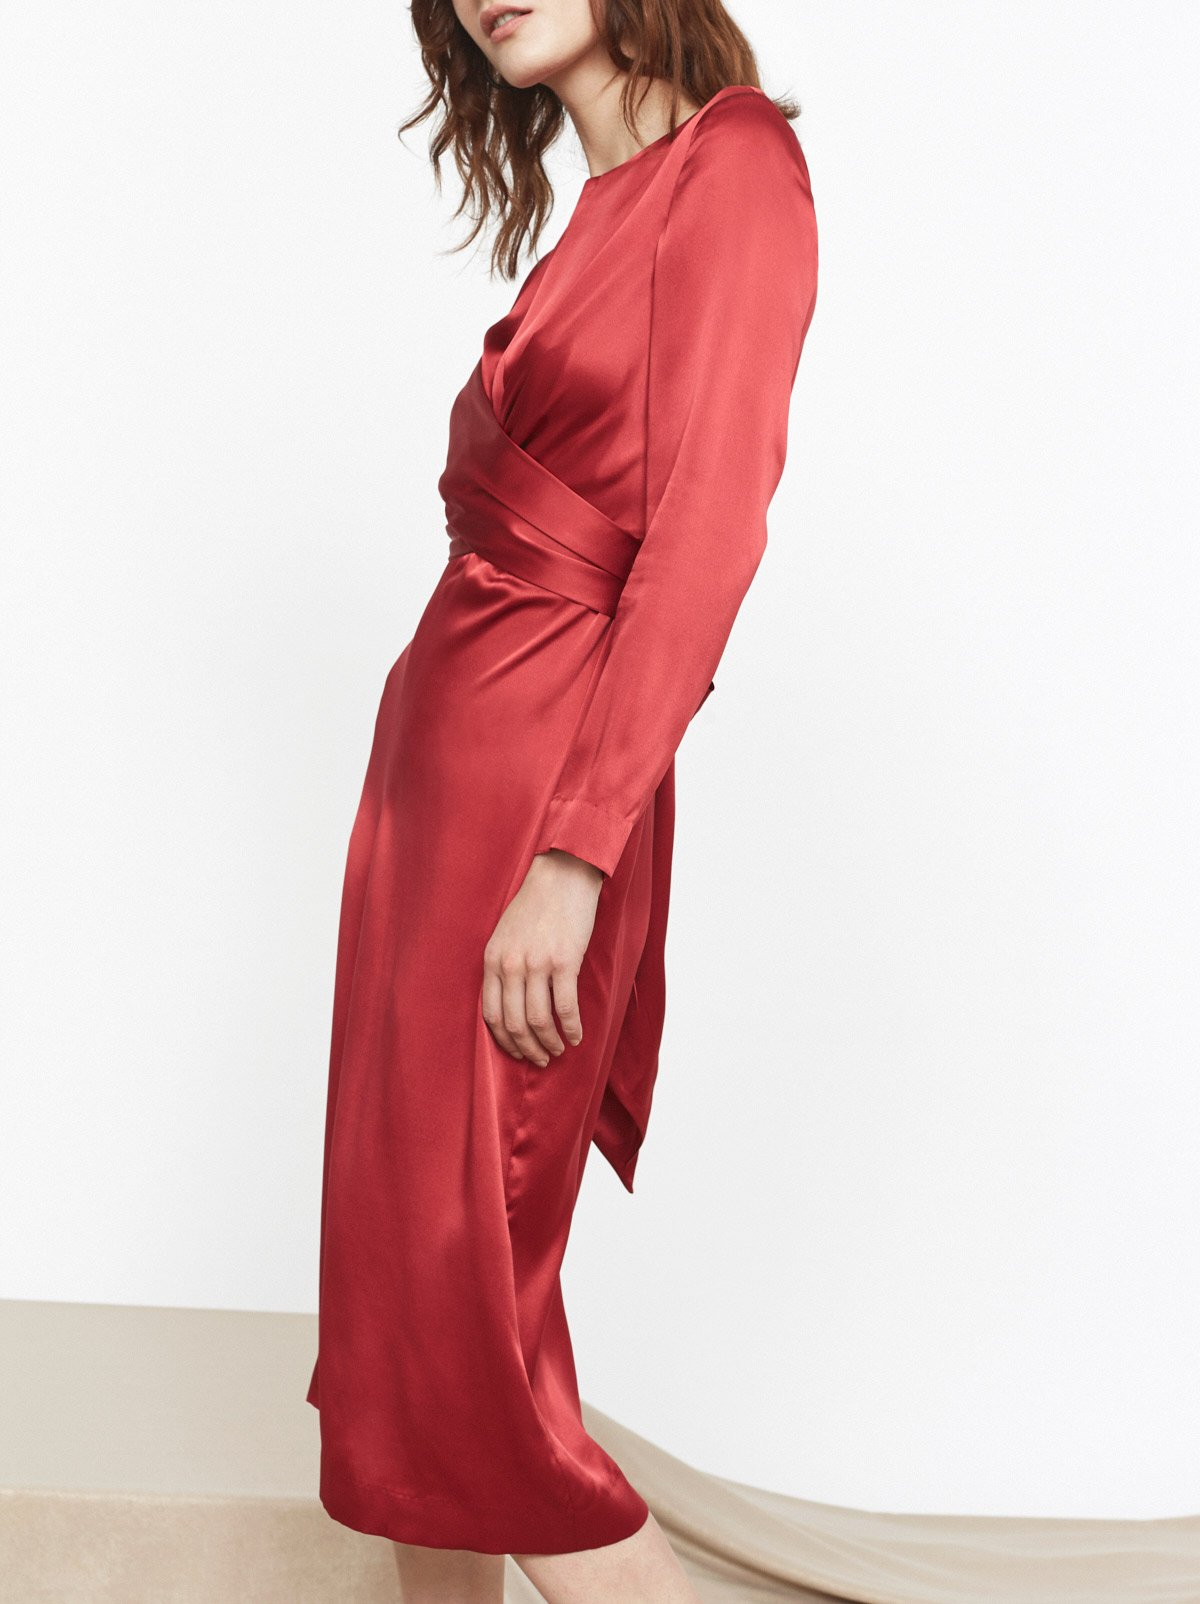 Simone Red Silk Tie Waist Dress